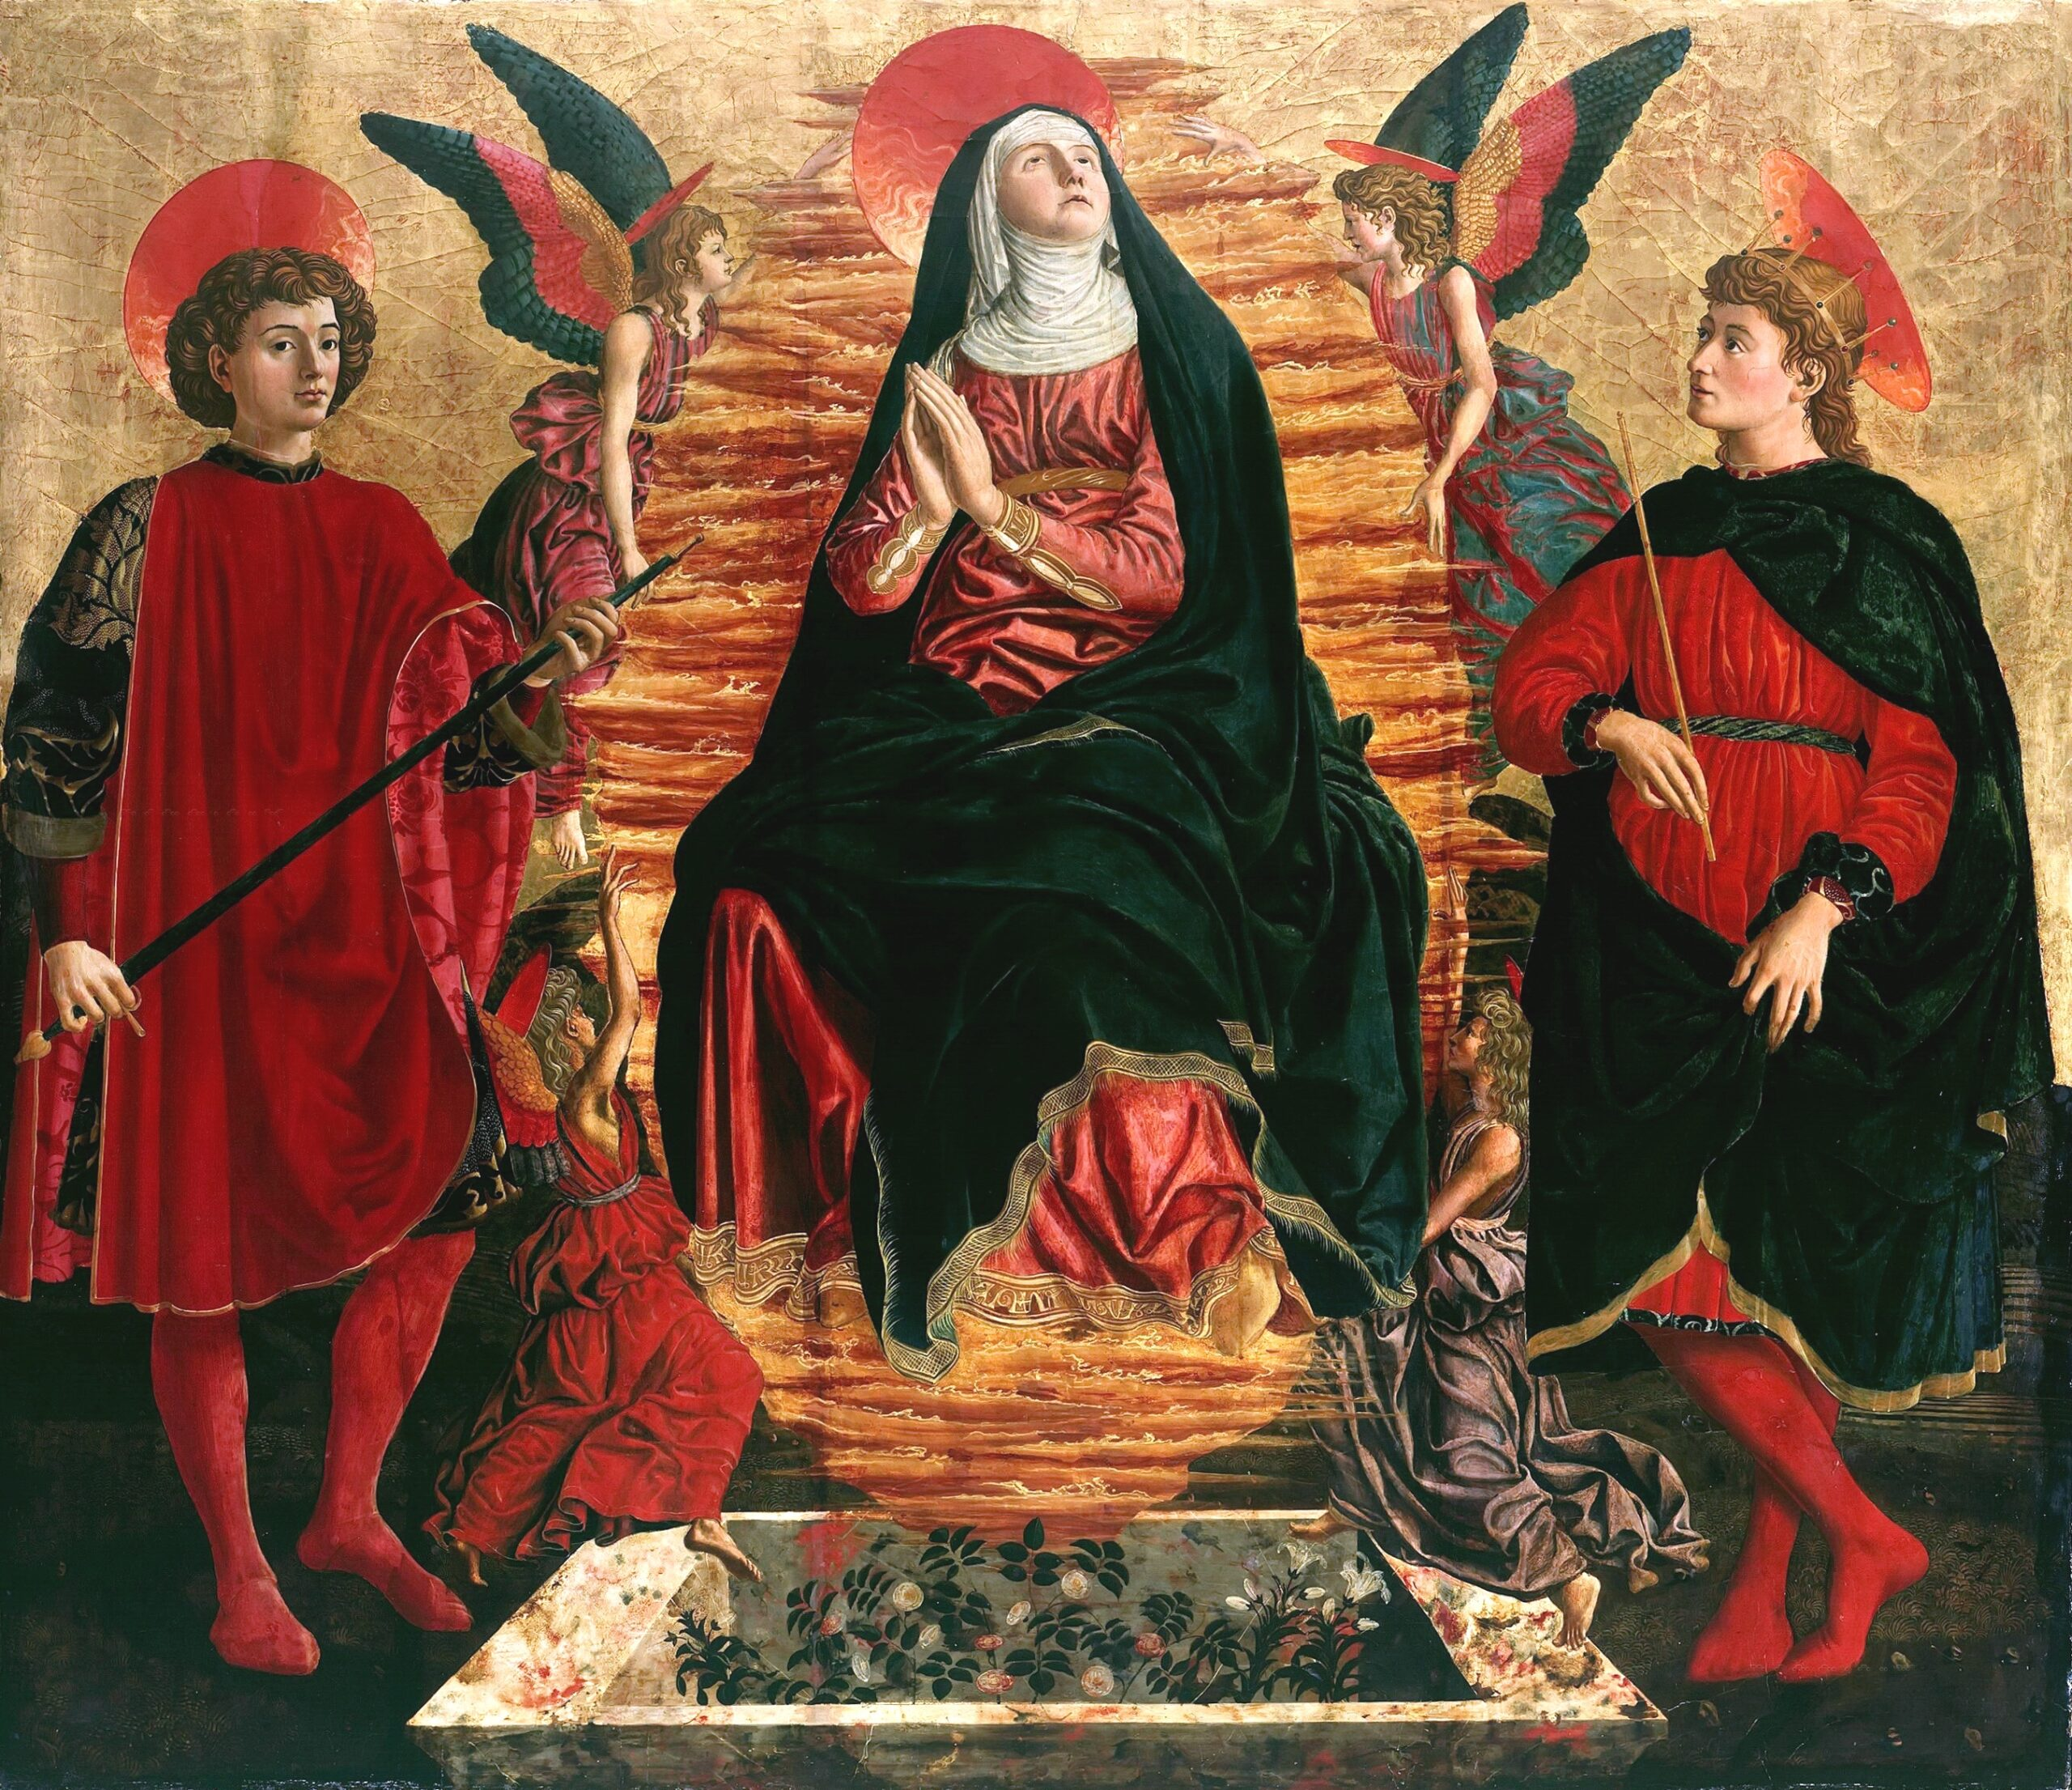 The Assumption, the Resurrection, and the Holy Eucharist